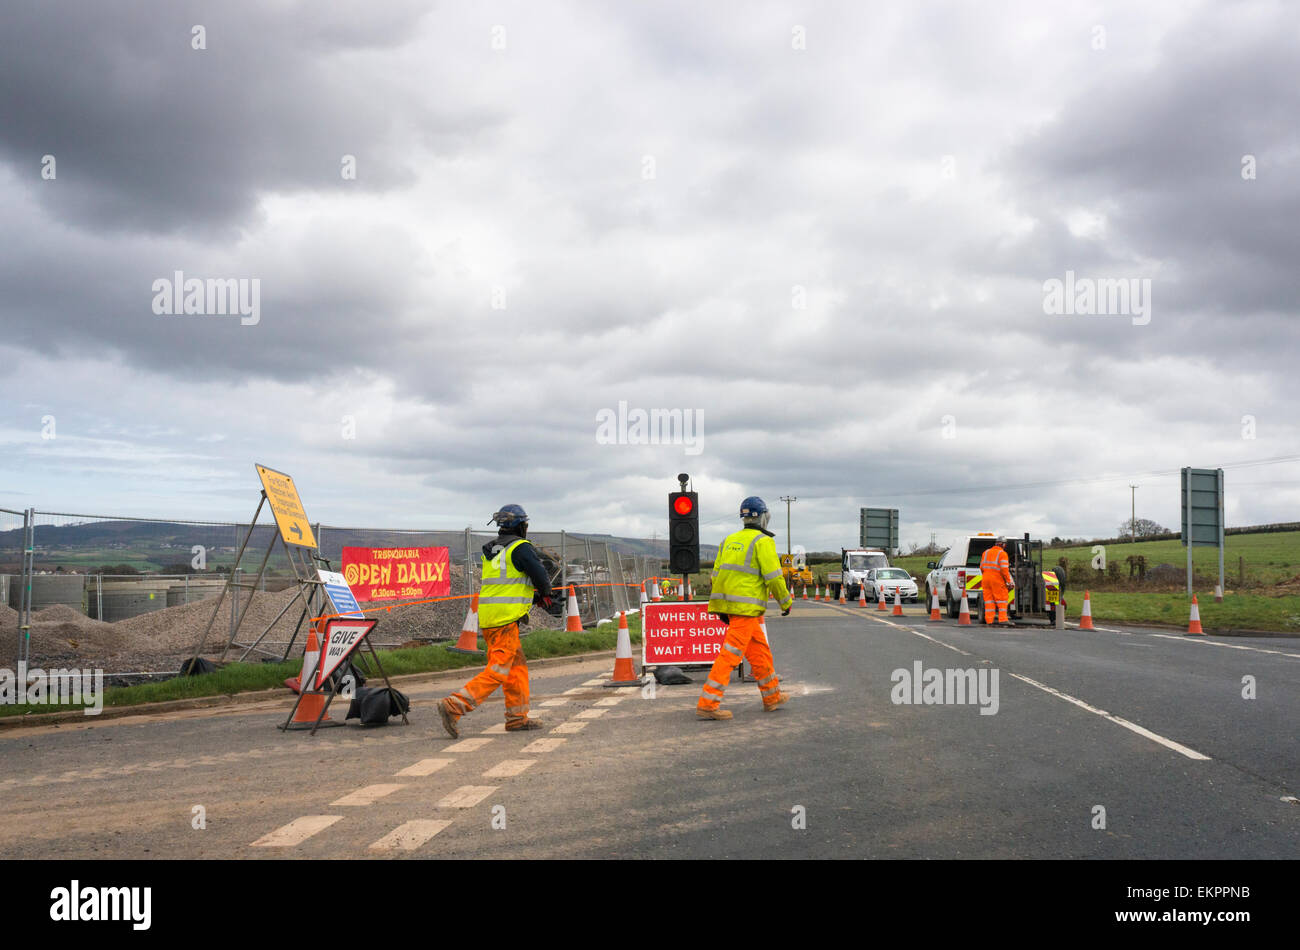 Roadworks and workers on a country road with stop lights, England, UK - Stock Image